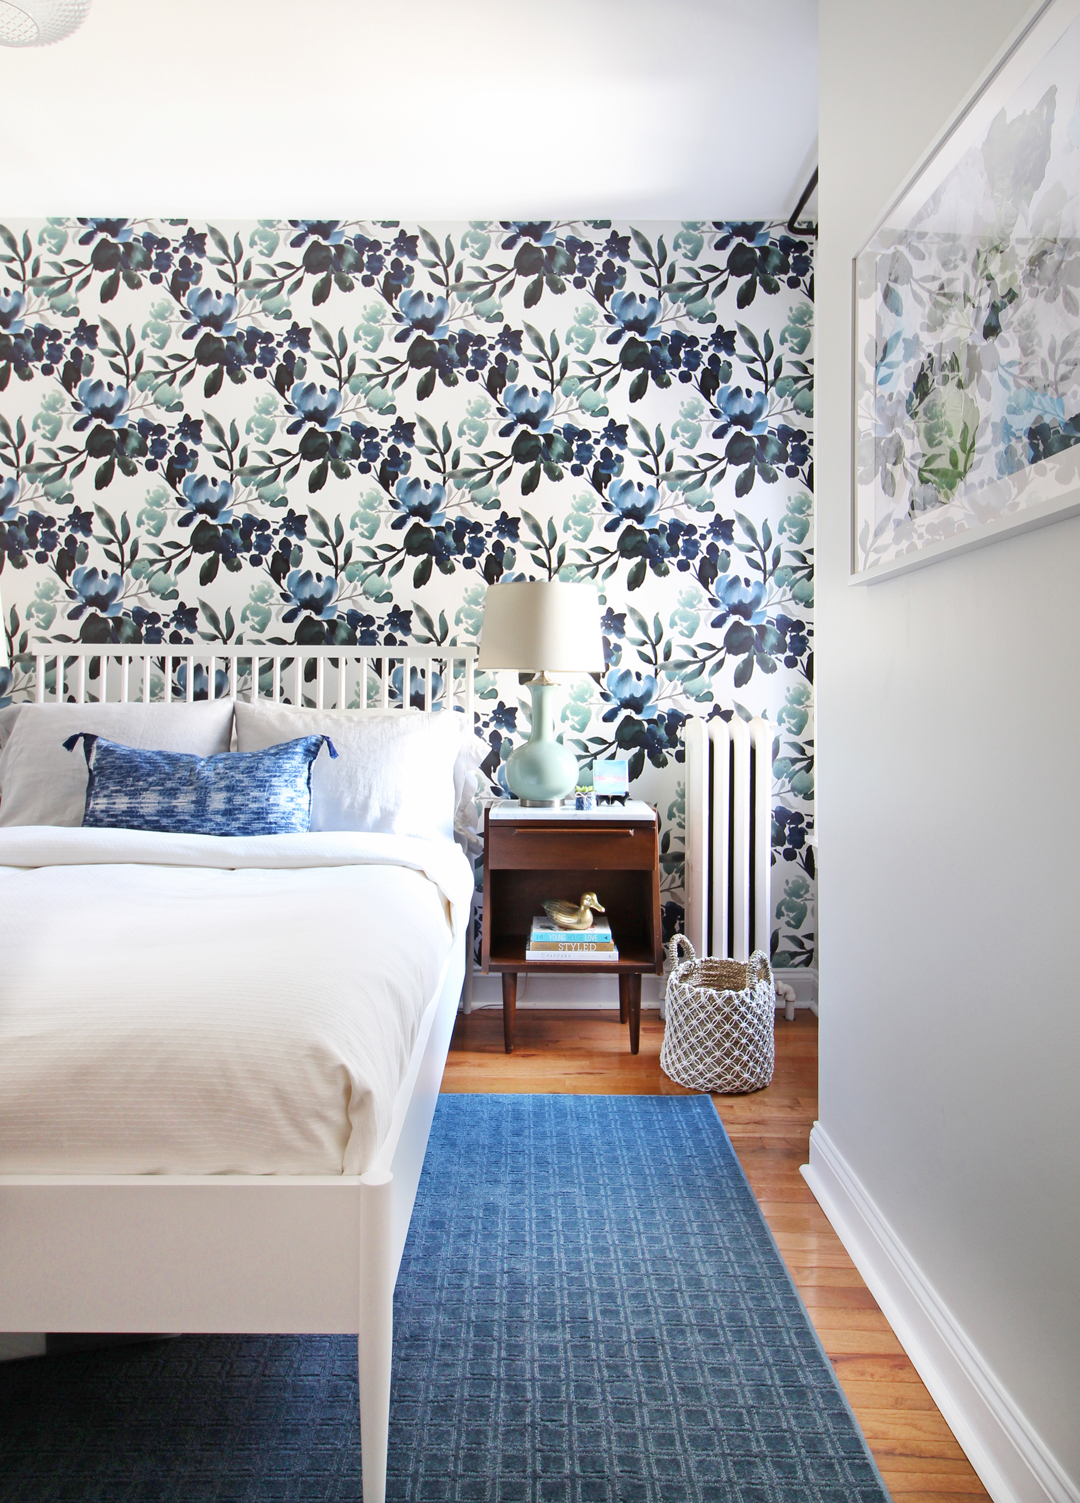 Rug placement in bedrooms